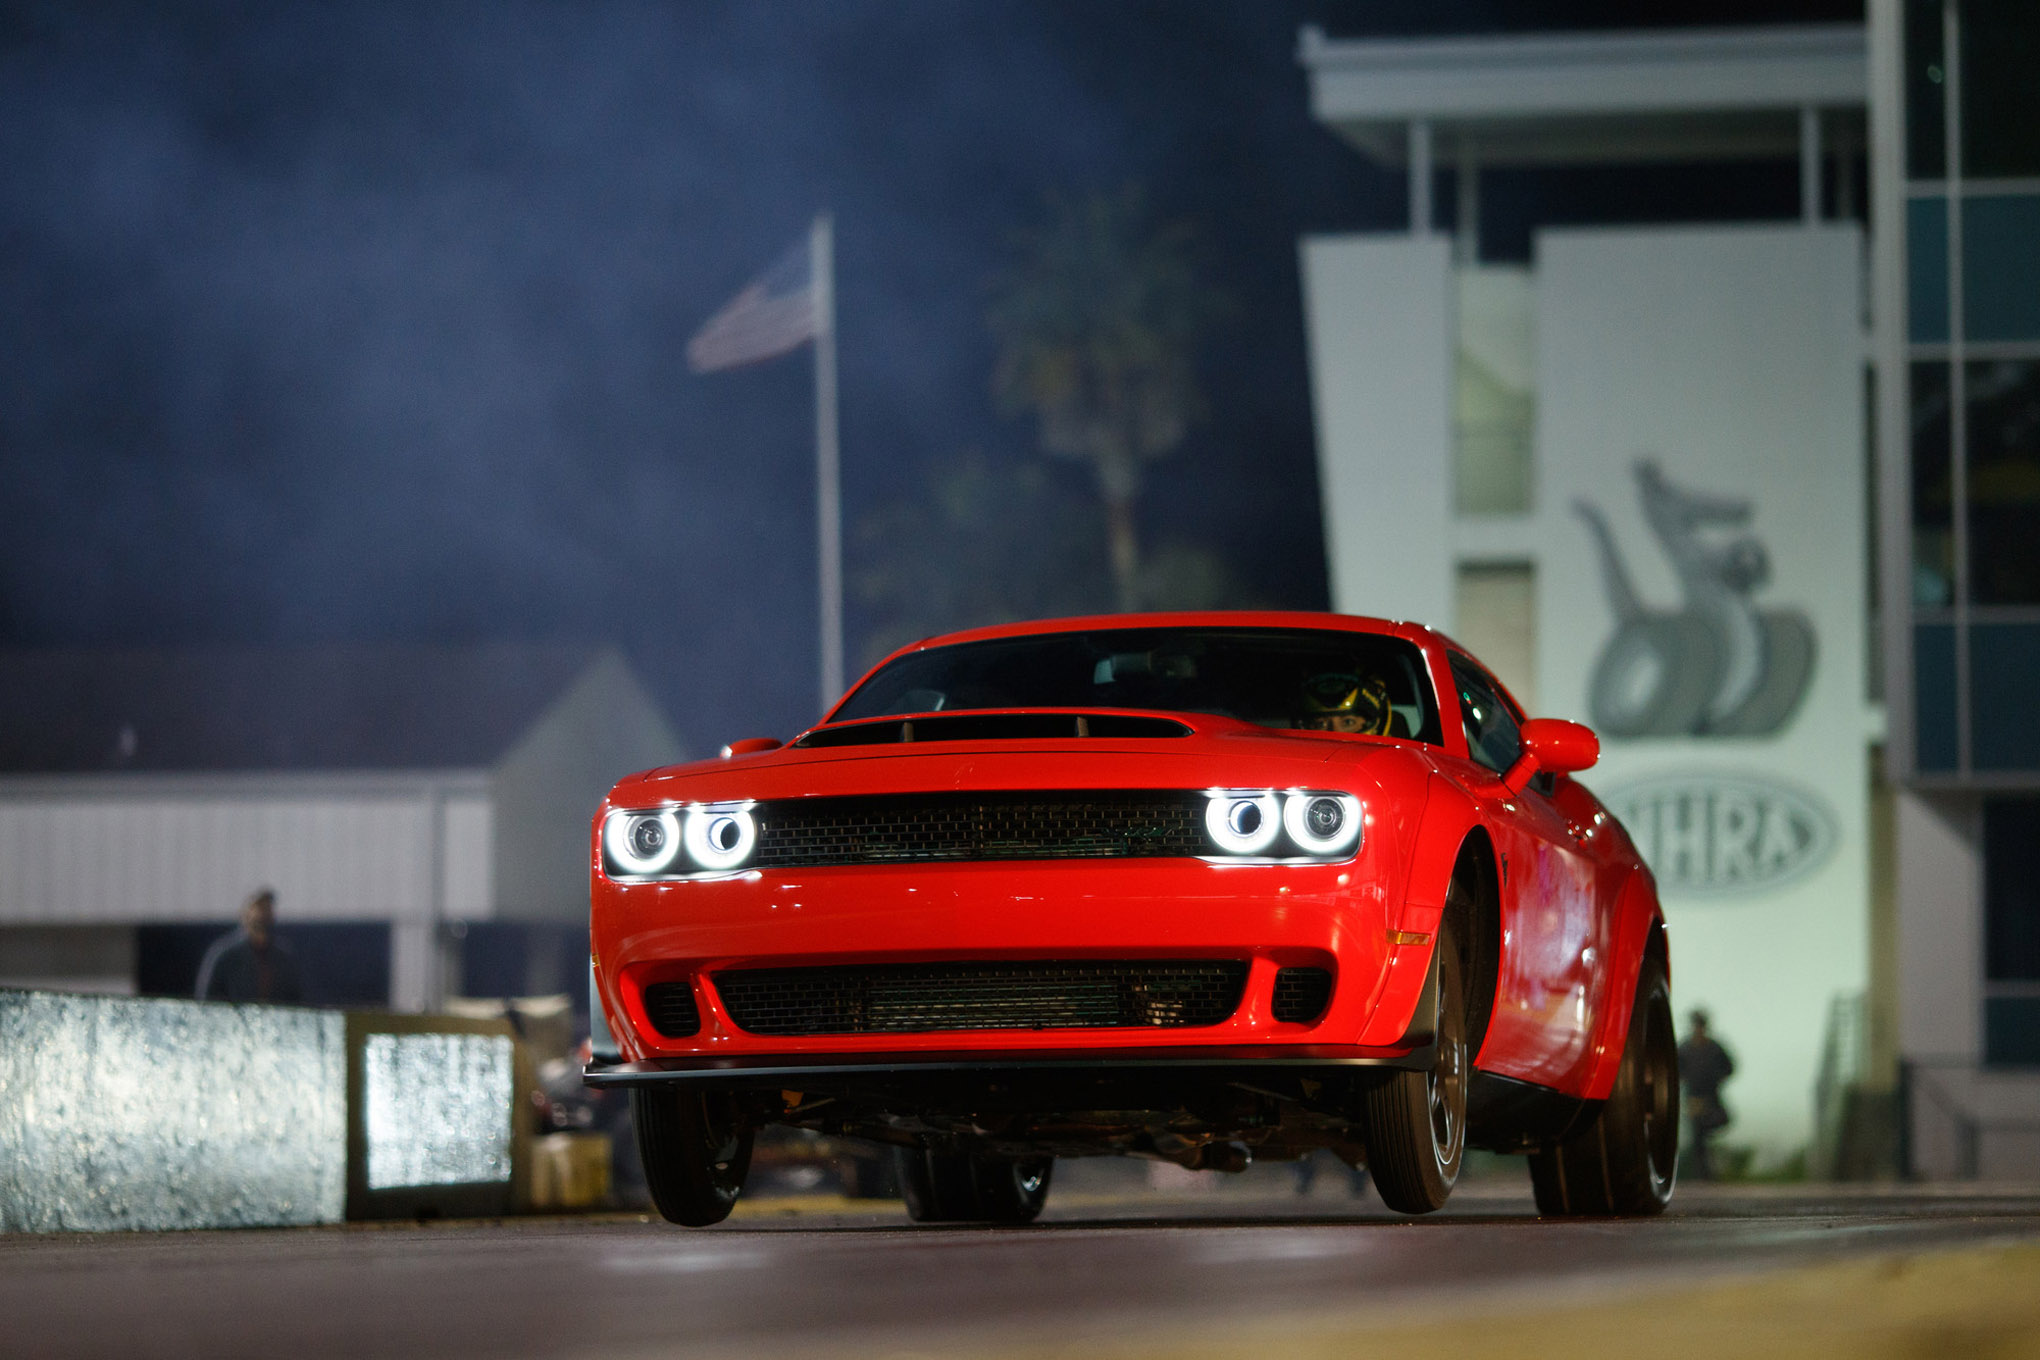 001-2018-dodge-demon.jpg